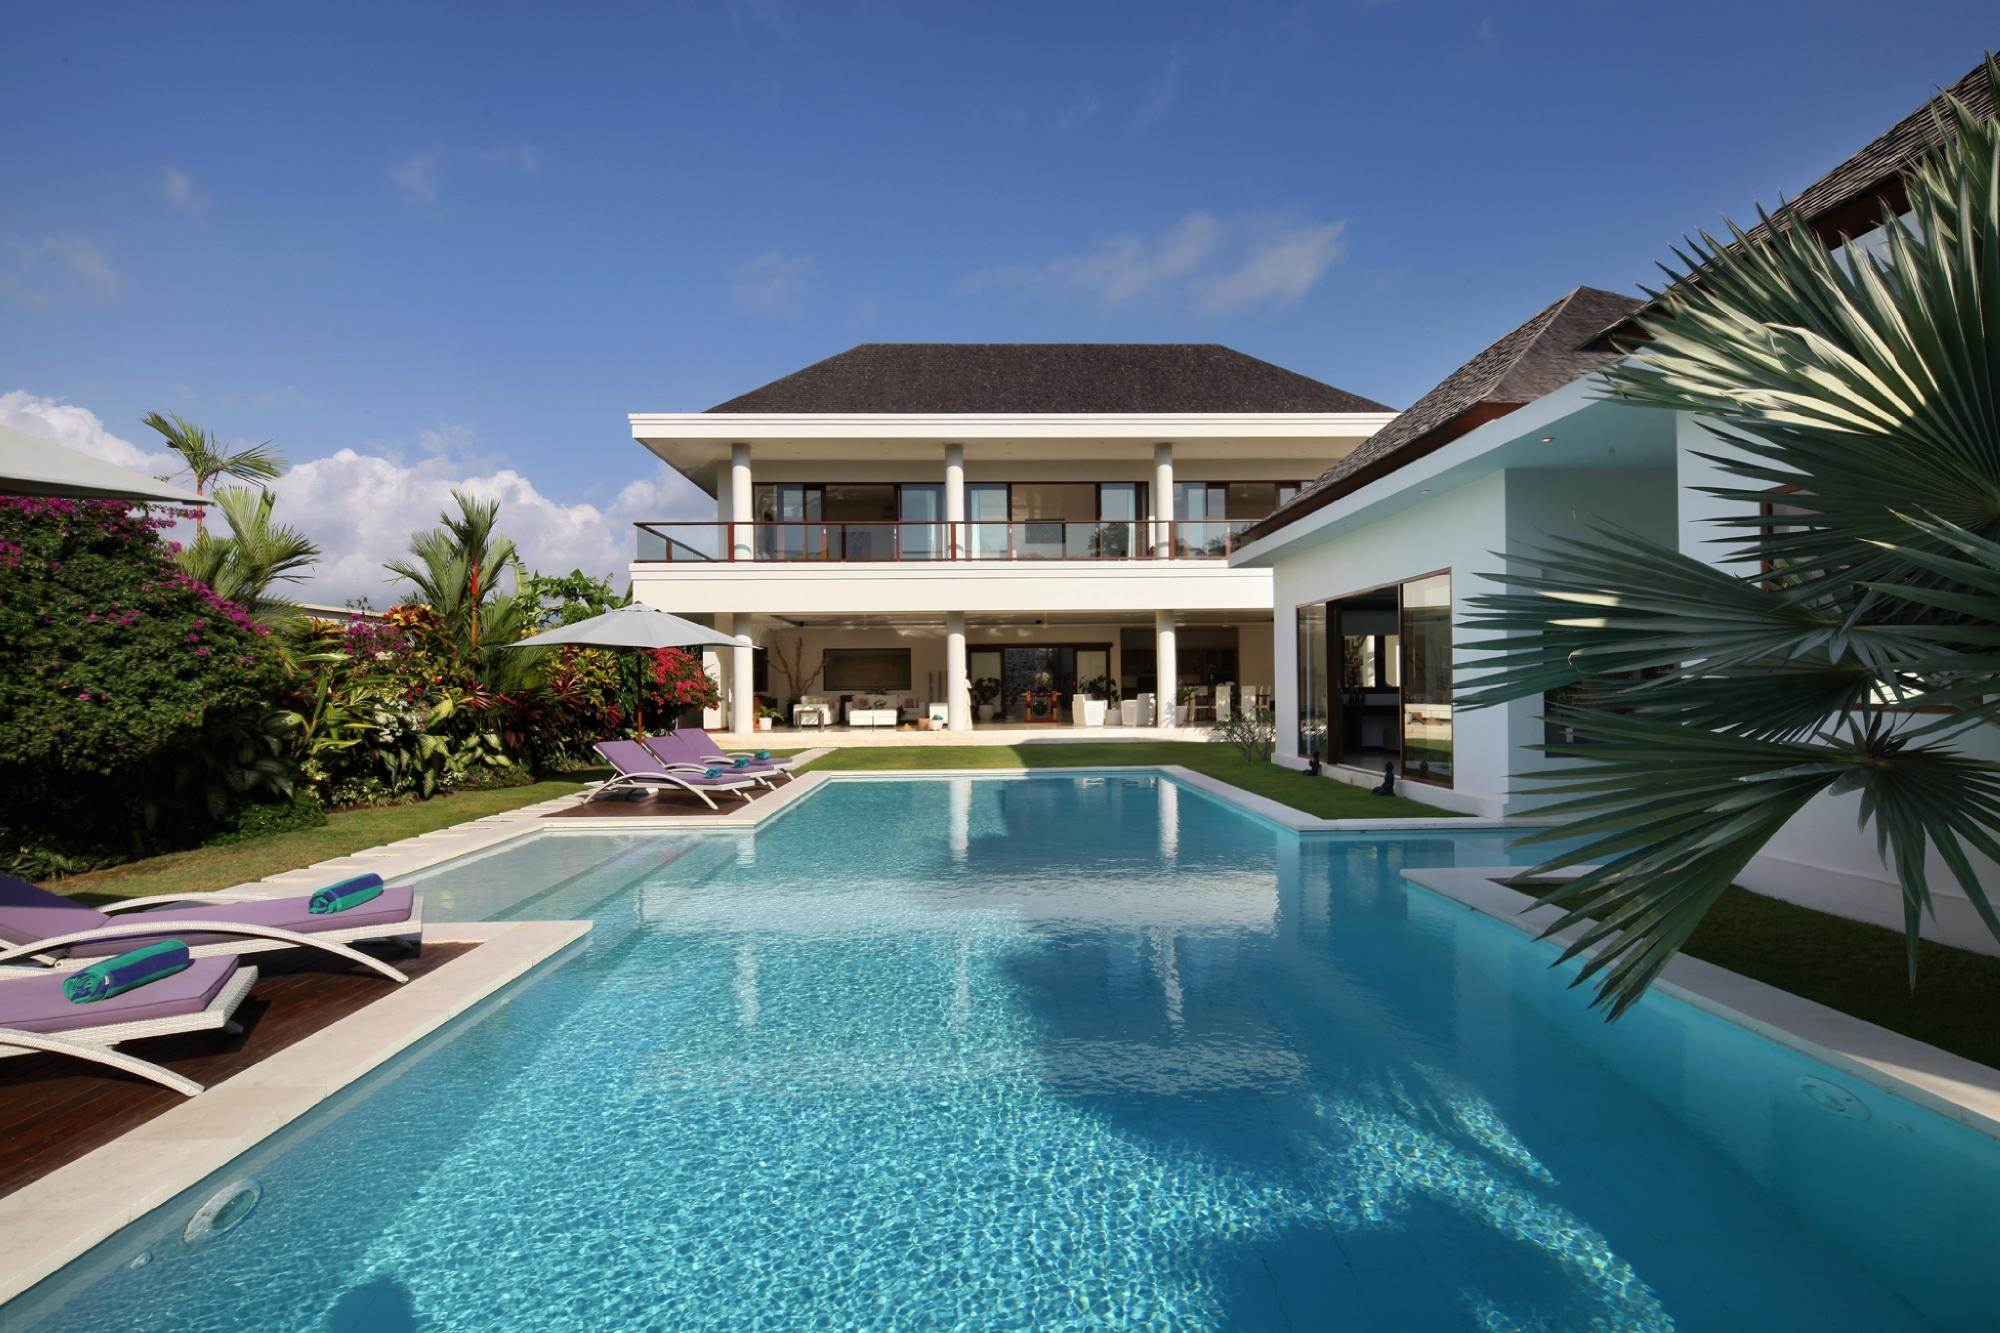 The Oshan Villas Bali